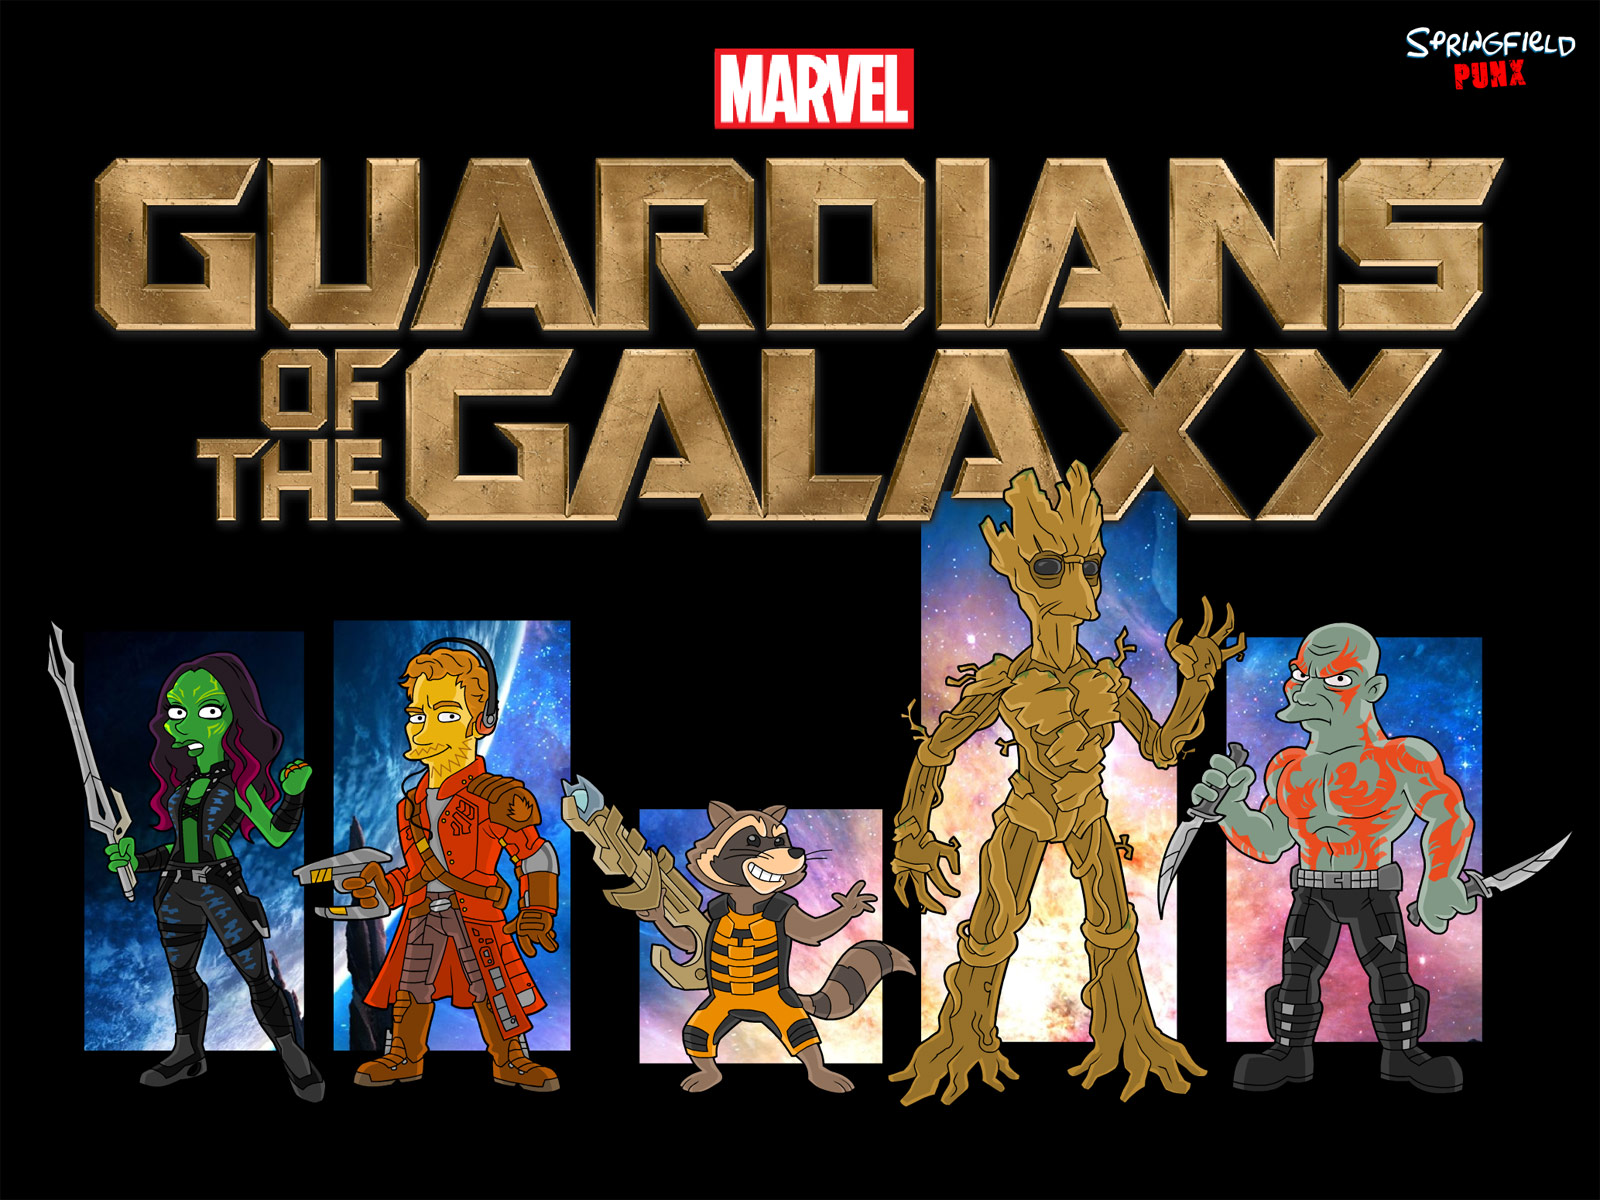 Top Wallpaper Marvel Galaxy - GOTG-Wallpaper-Marvel-1600x1200  You Should Have_80174.jpg